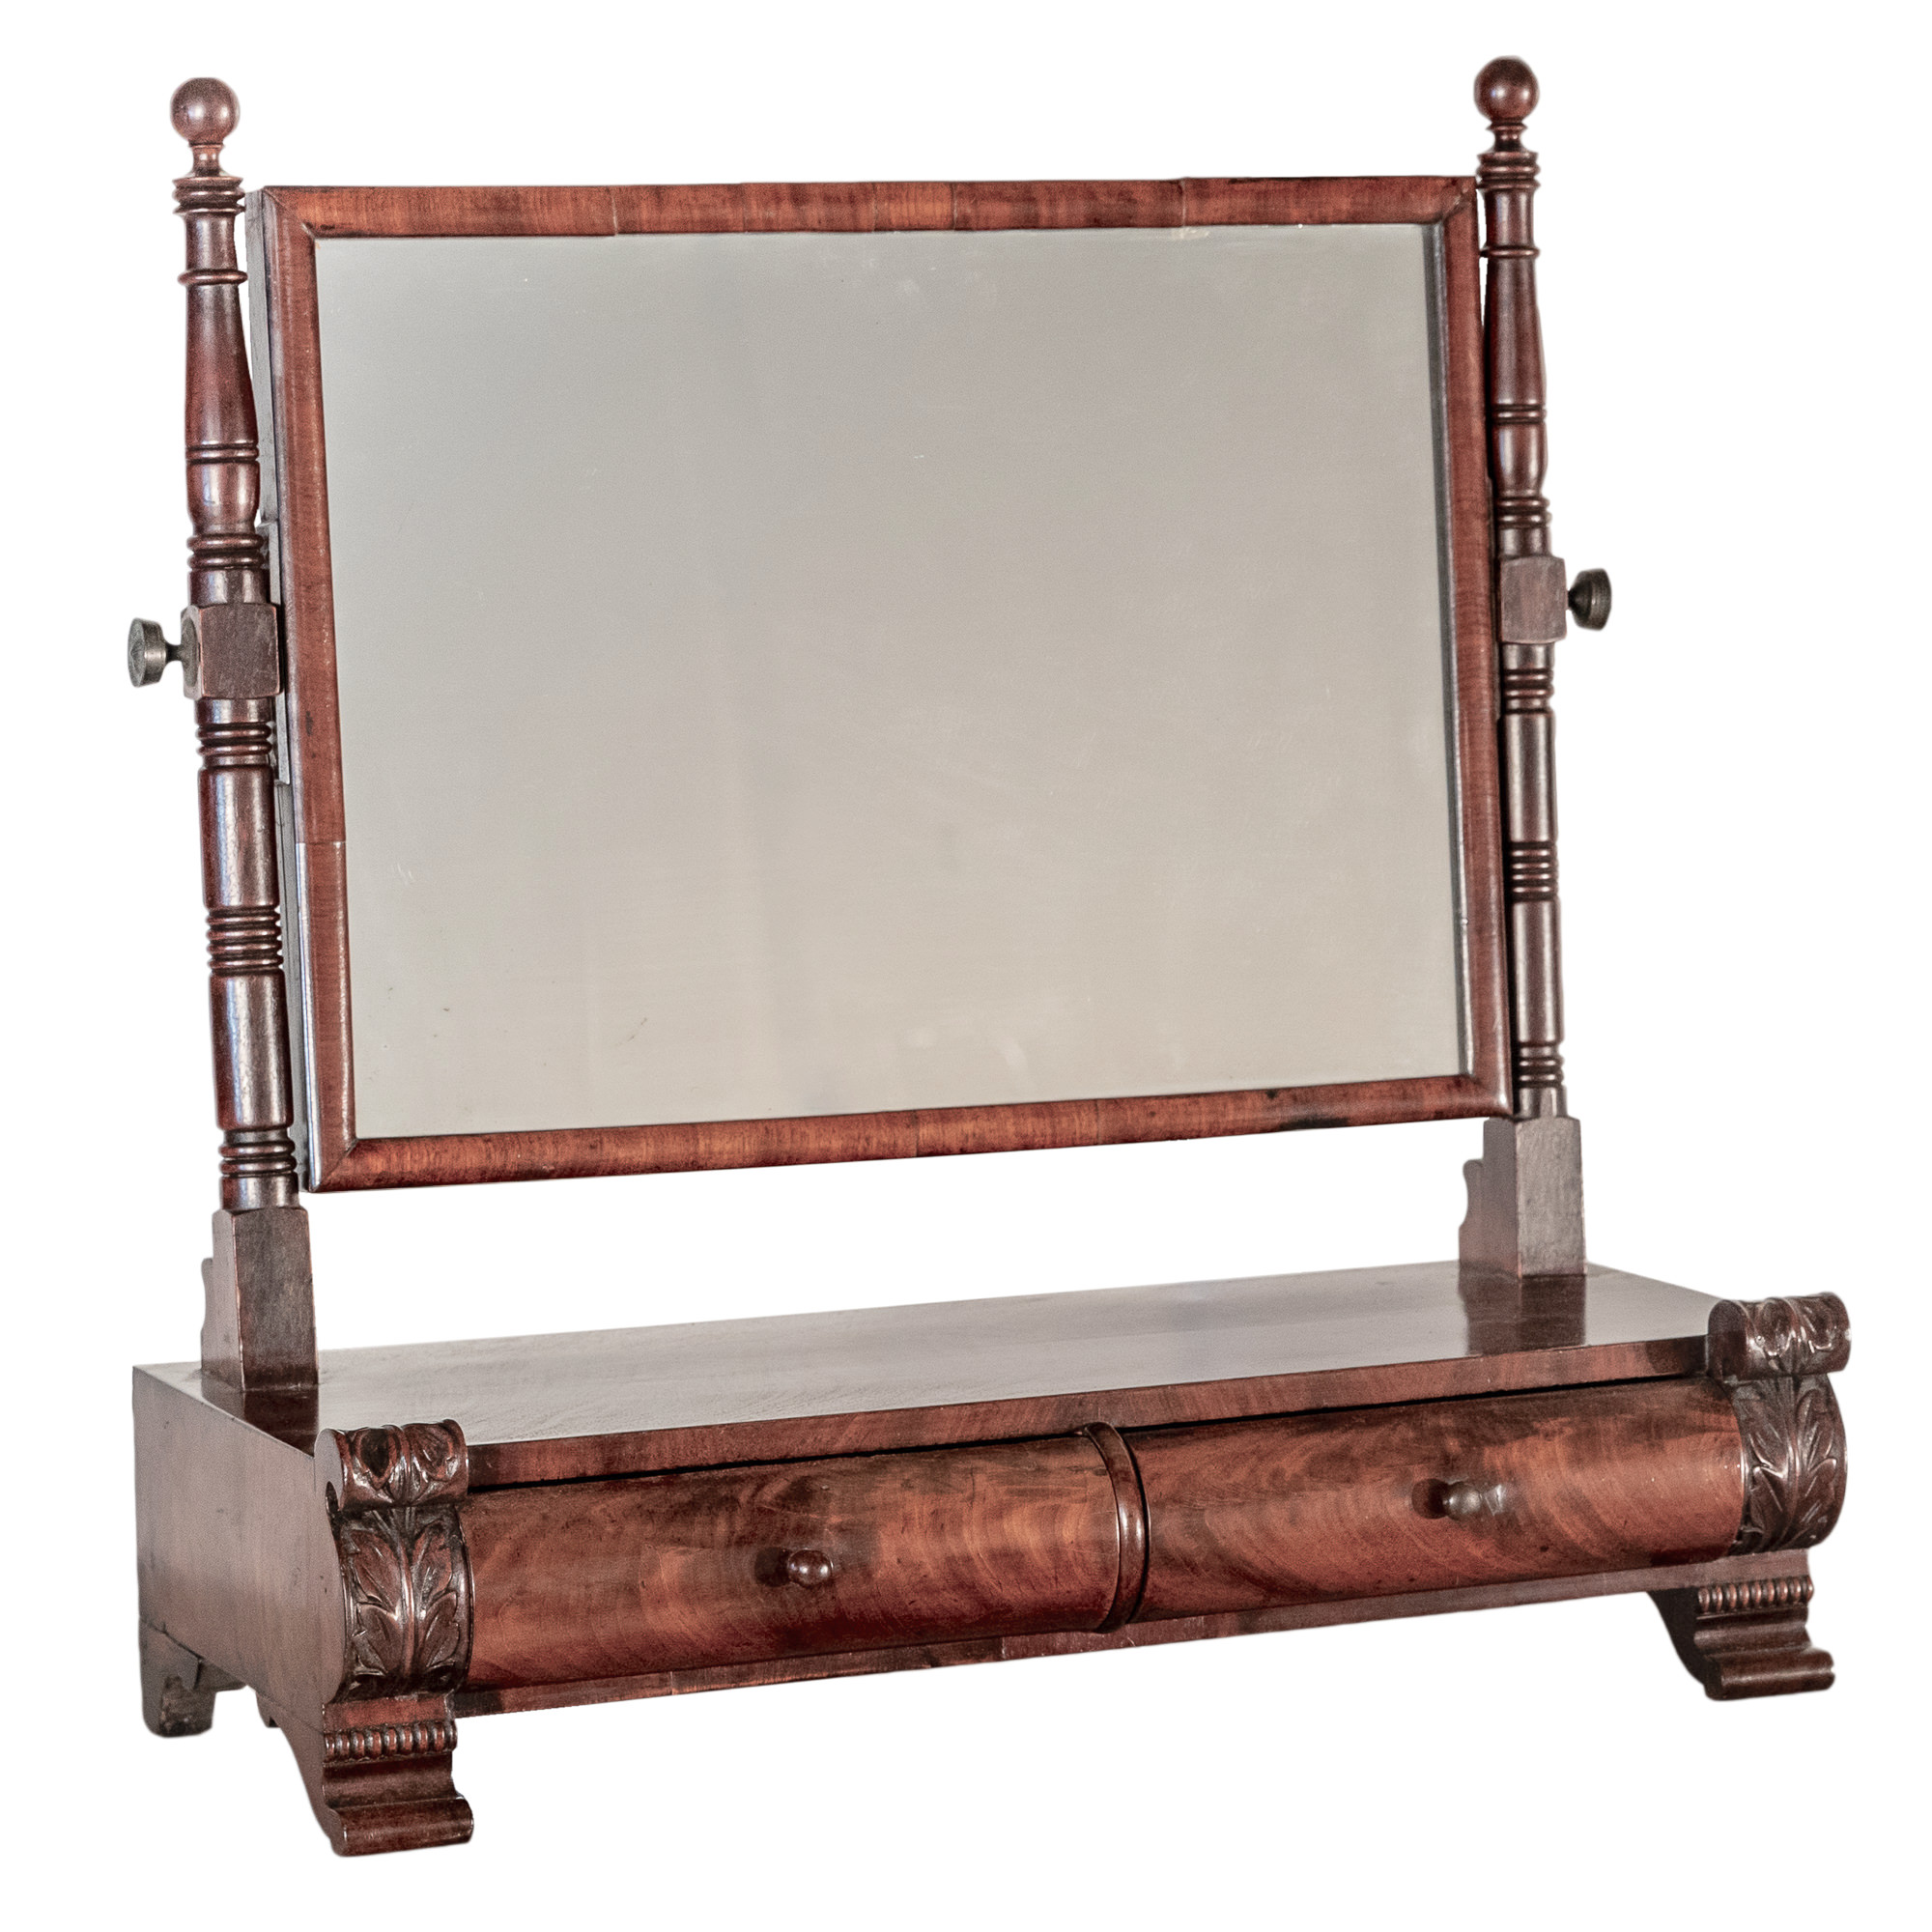 'Regency Mahogany Toilet Mirror with Two Drawers Circa 1820'